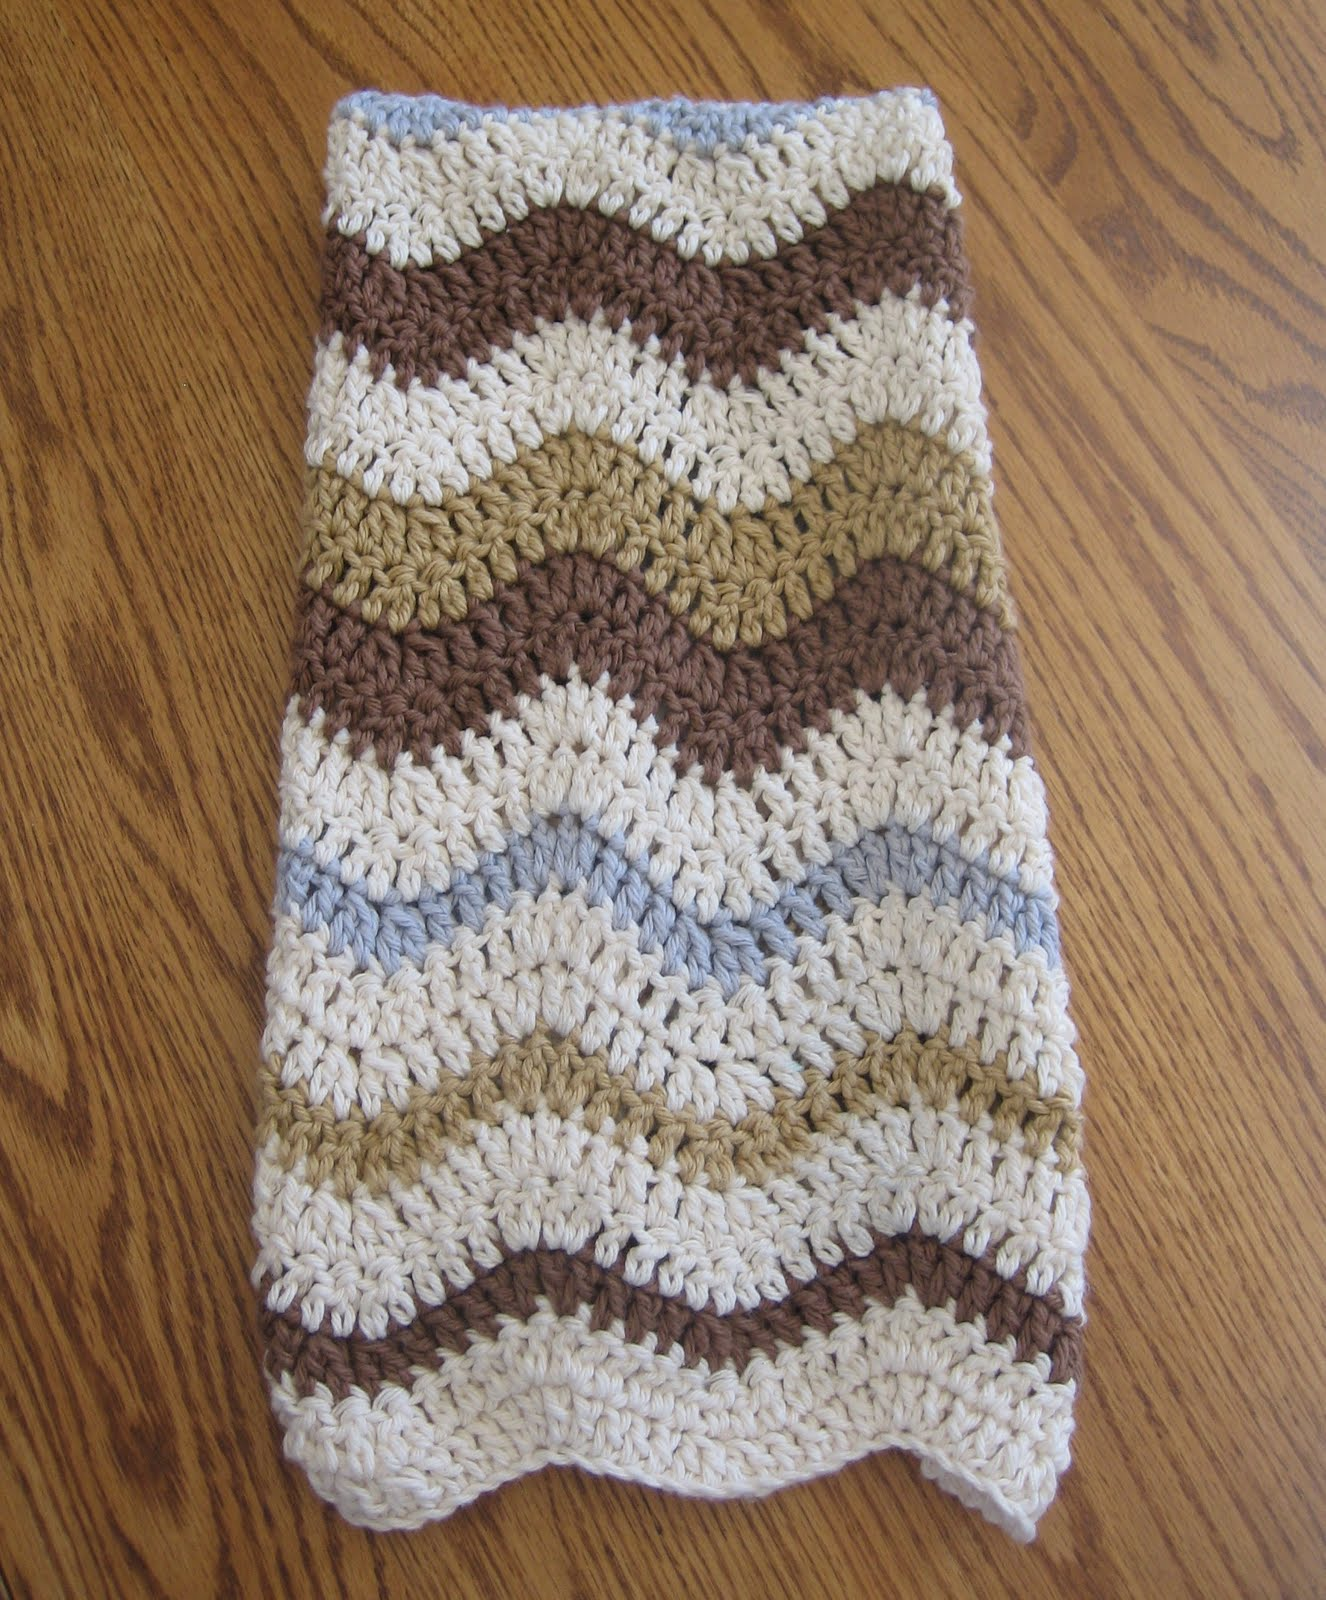 FREE CROCHET TOWEL PATTERN FOR THE KITCHEN Crochet Patterns